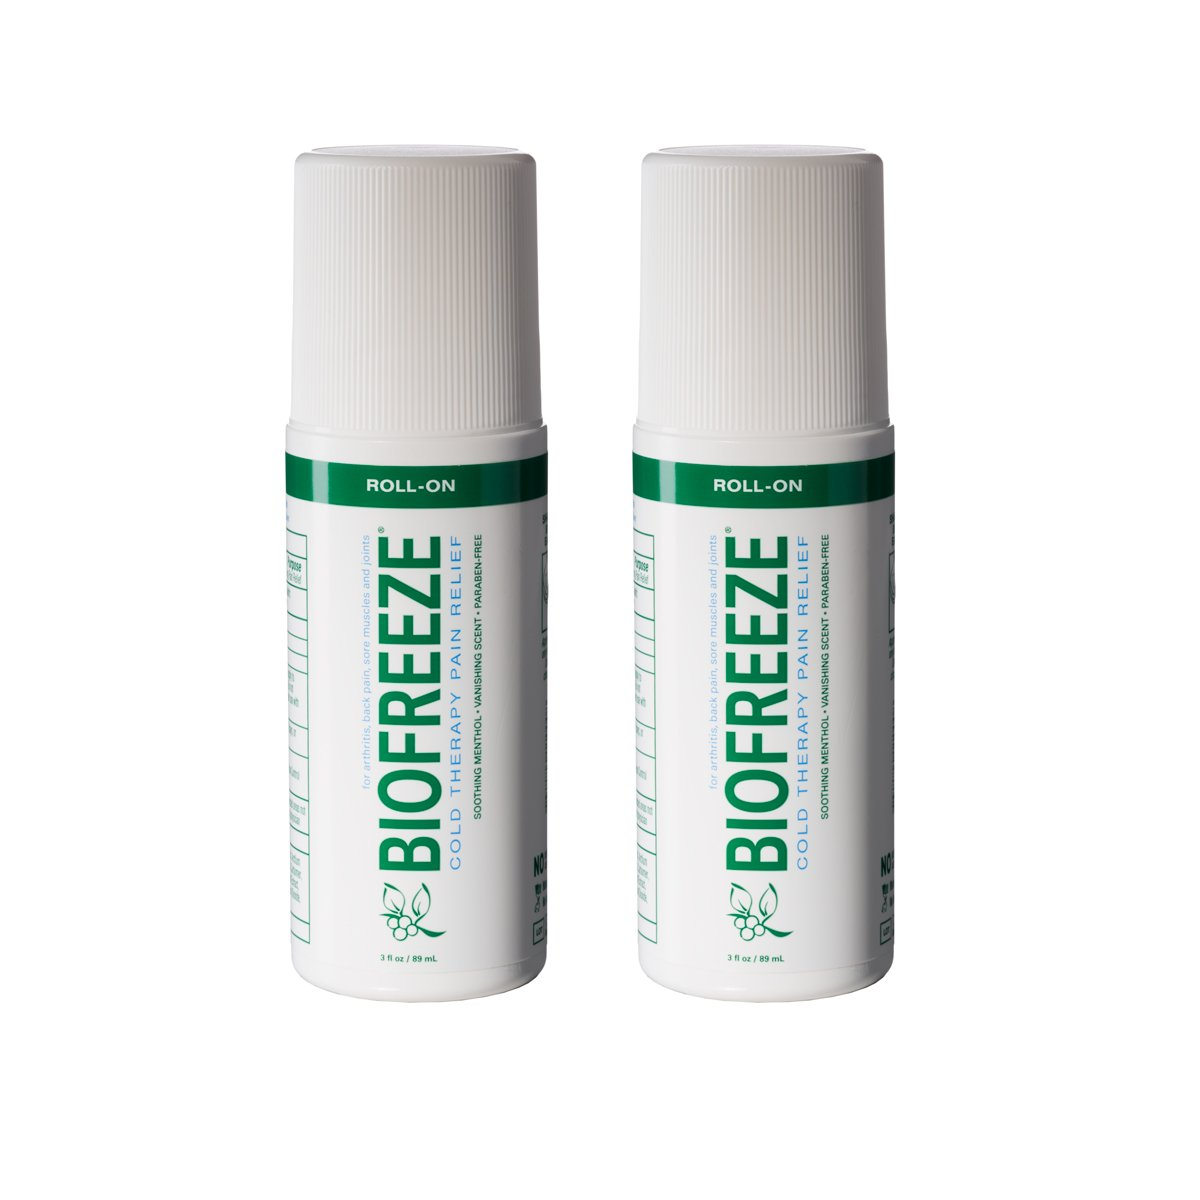 Biofreeze 13527 Pain Relief Gel for Arthritis, 3 oz. Roll-On Cold Topical Analgesic, Fast Acting Cooling Pain Reliever for Muscle, Joint, and Back Pain, Original Green Formula, Pack of 2, 4% Menthol